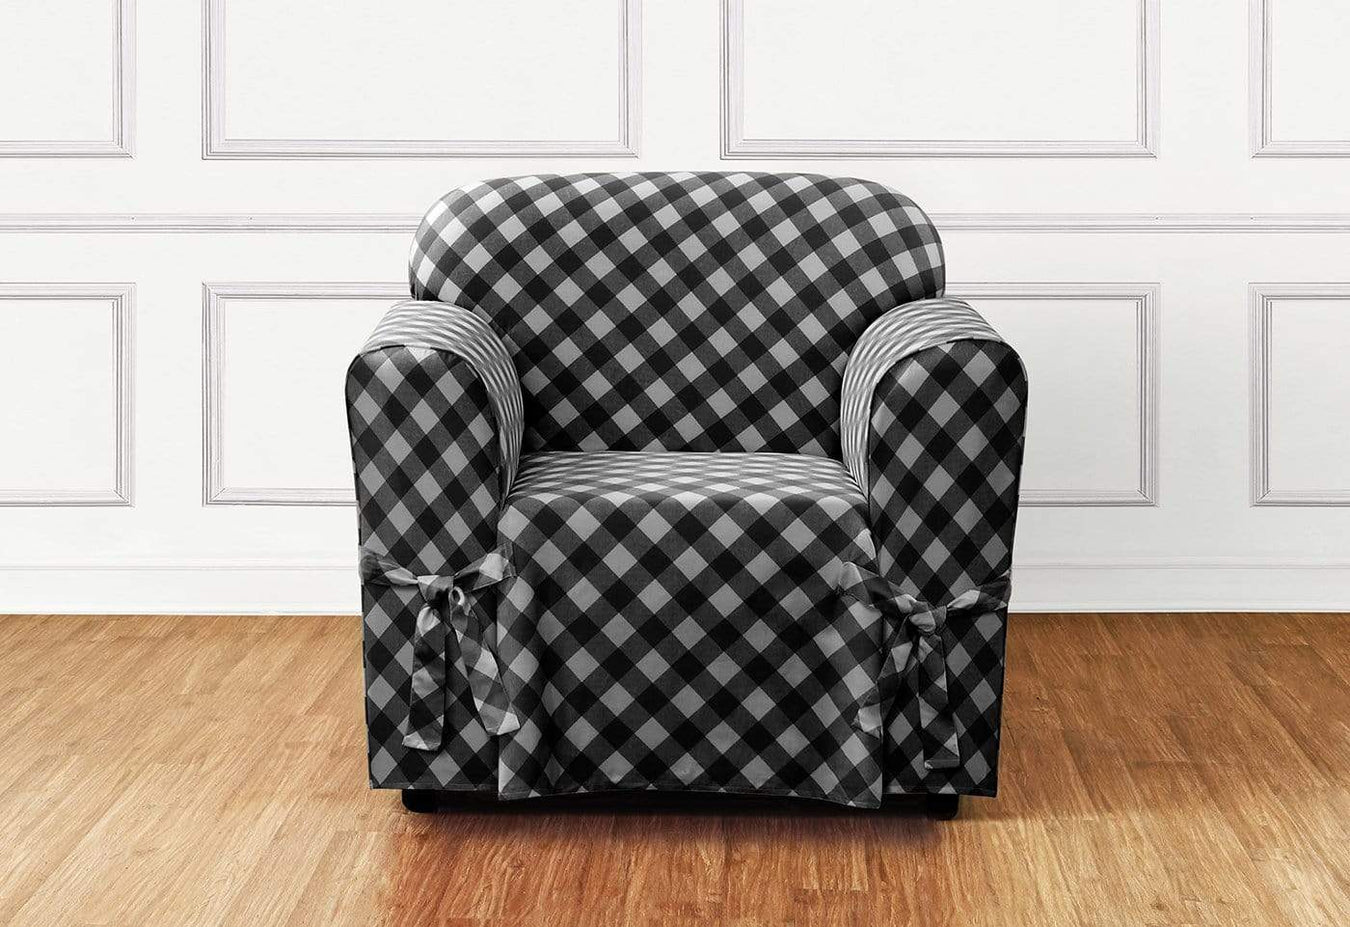 Awe Inspiring Buffalo Check One Piece Chair Slipcover Relaxed Fit 100 Cotton Machine Washable Gmtry Best Dining Table And Chair Ideas Images Gmtryco